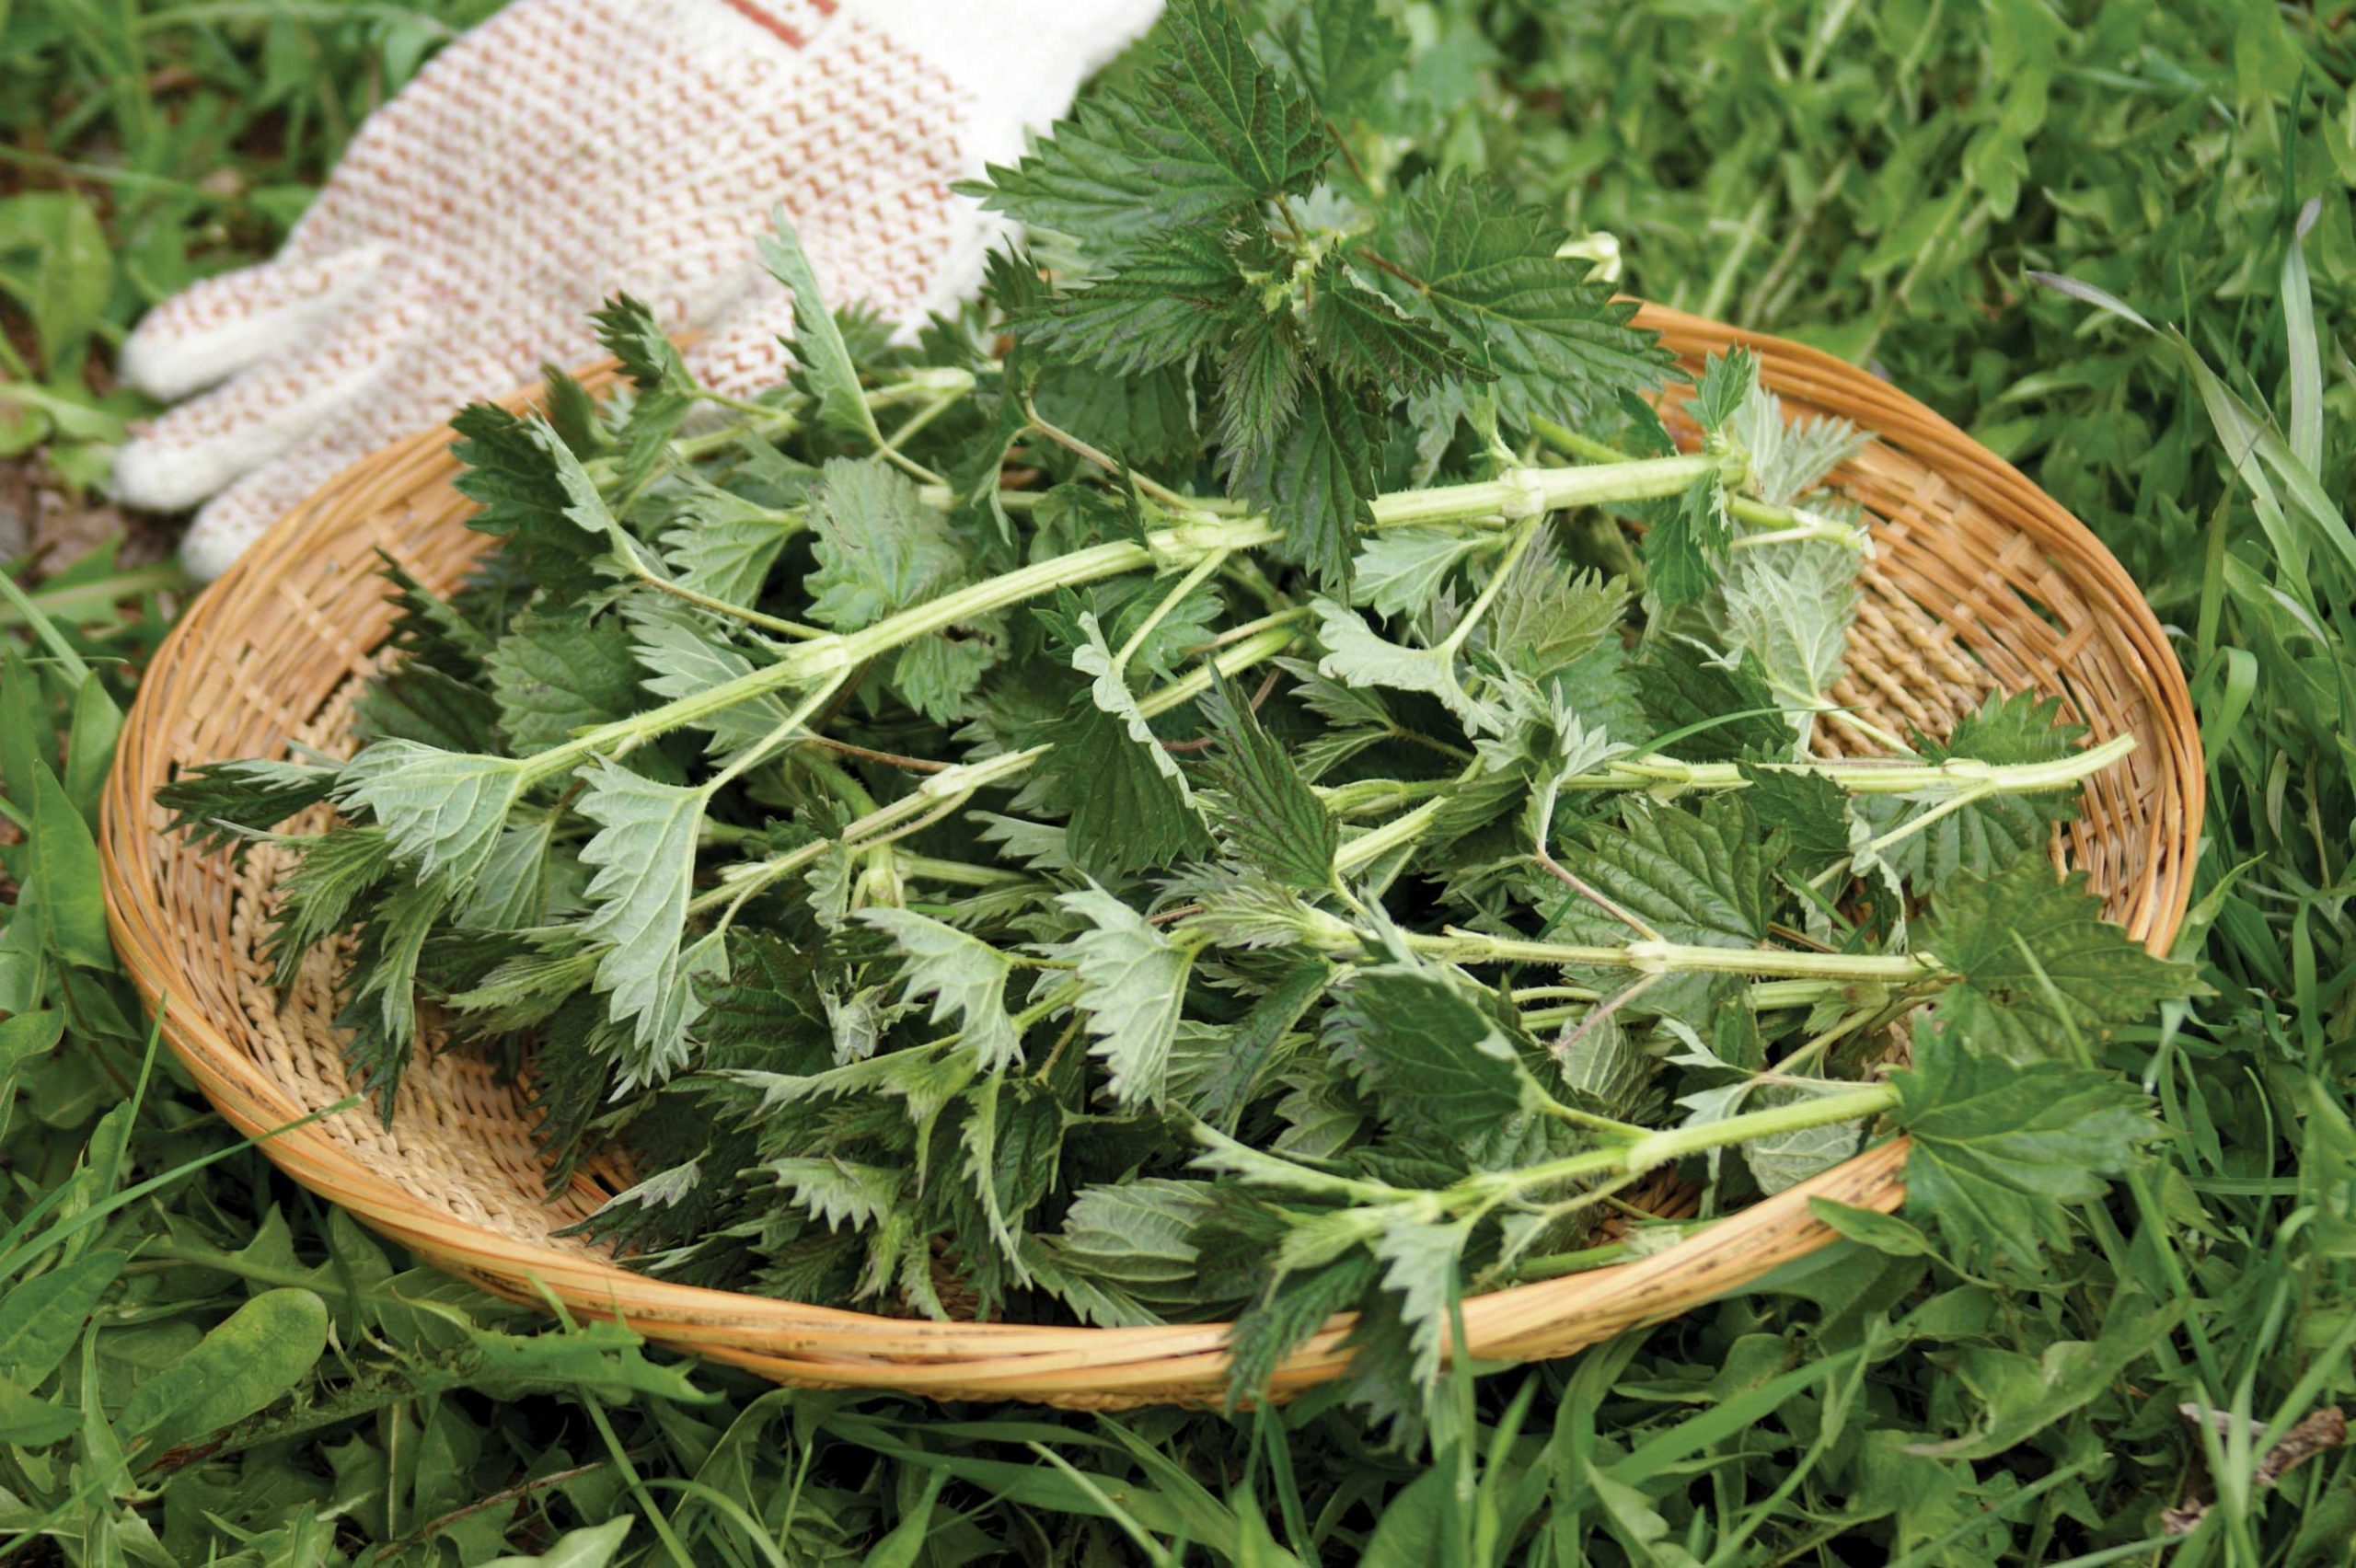 Stinging nettles can be steeped into tea or cooked as a potherb. Use them as a substitute for cooked spinach.